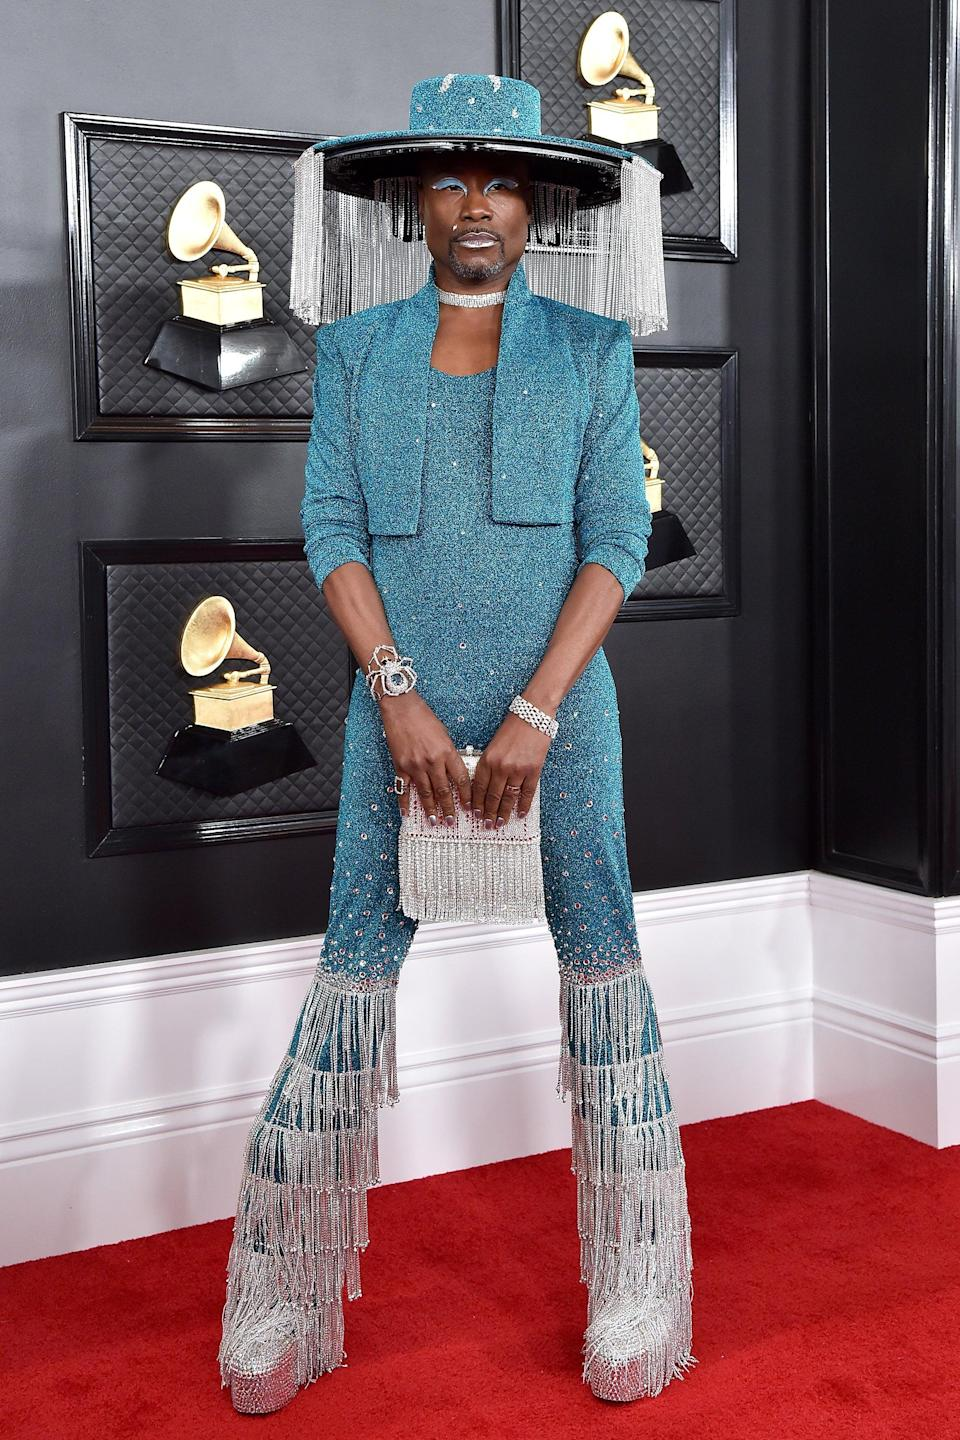 """<h2>Billy Porter, 2020</h2><br>Billy Porter's remote-controlled, rhinestone hat was enough to get him on this list. The rest of his teal-and-silver Baja East look was just icing on the cake. <span class=""""copyright"""">Photo: Axelle/Bauer-Griffin/FilmMagic.</span>"""